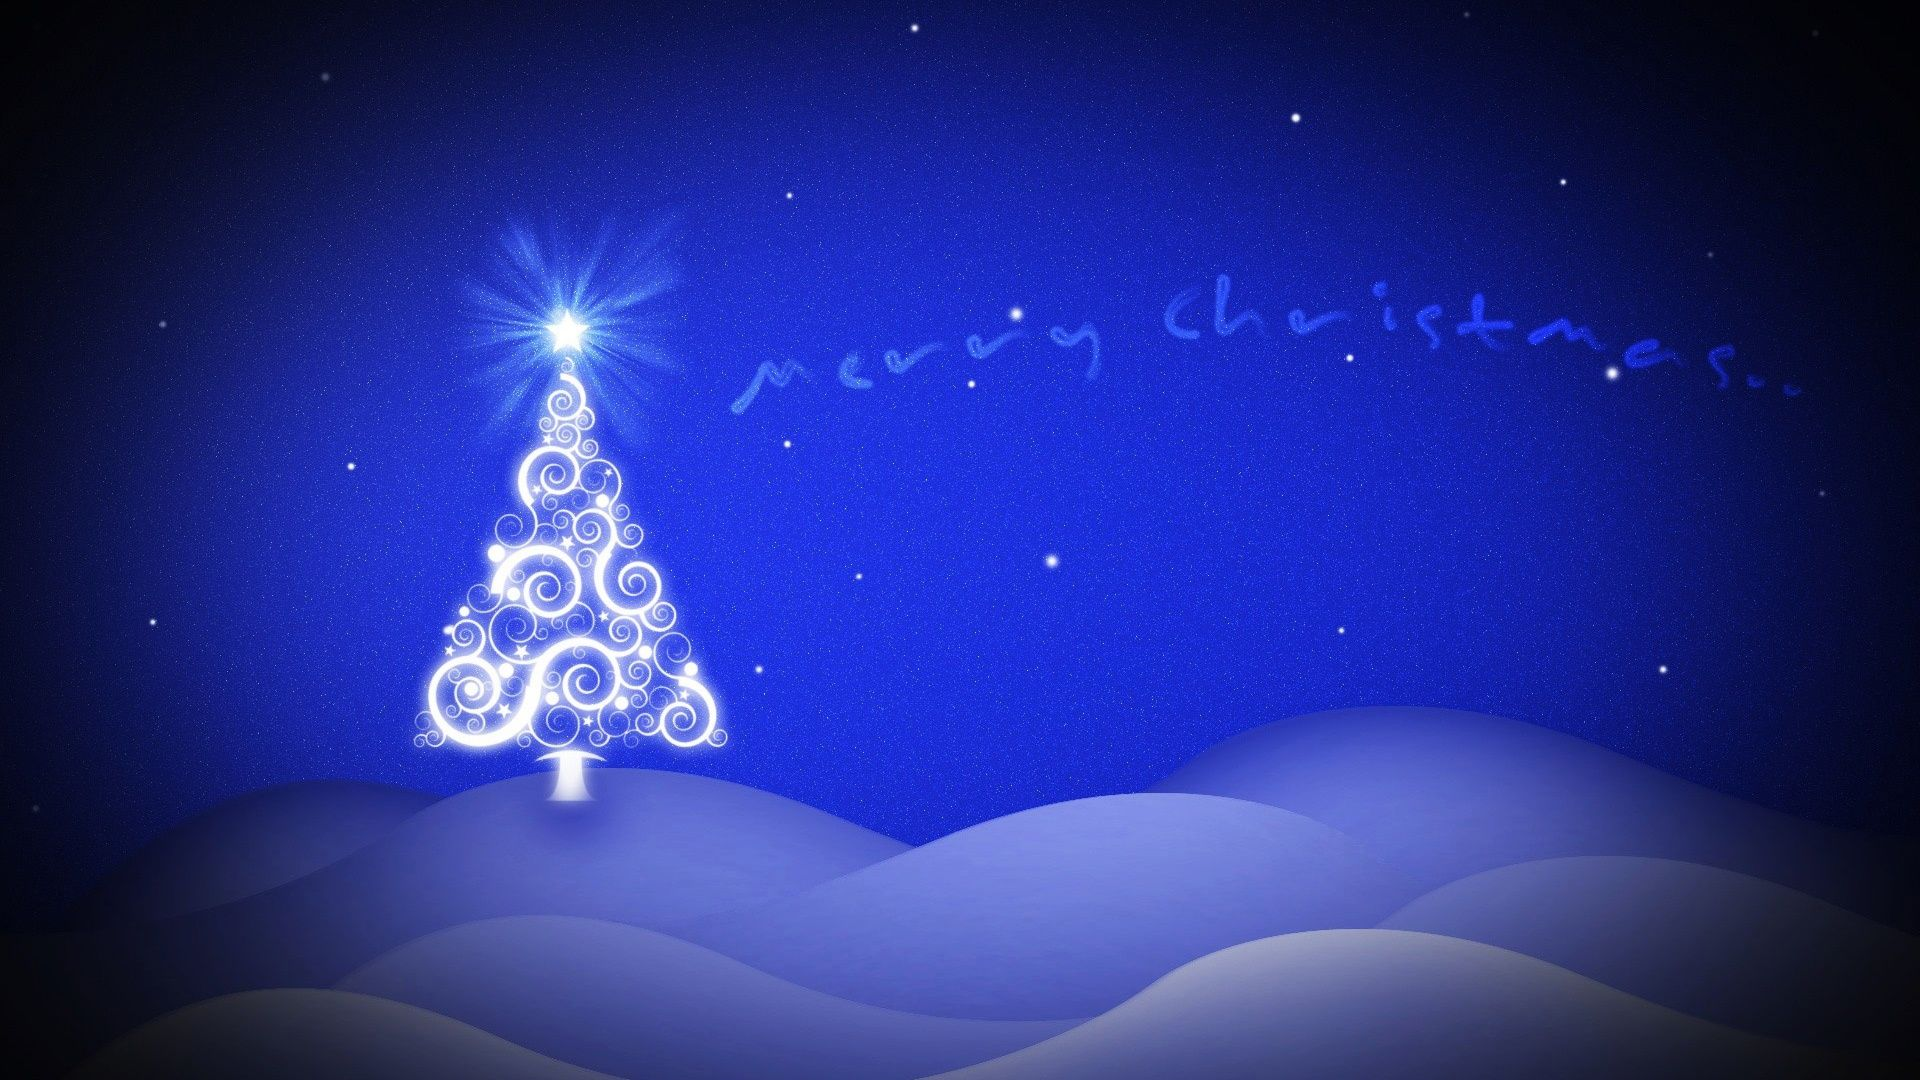 Happy New Year 2014 And Merry Christmas Merry Christmas Pictures Merry Christmas Wallpaper Christmas Pictures